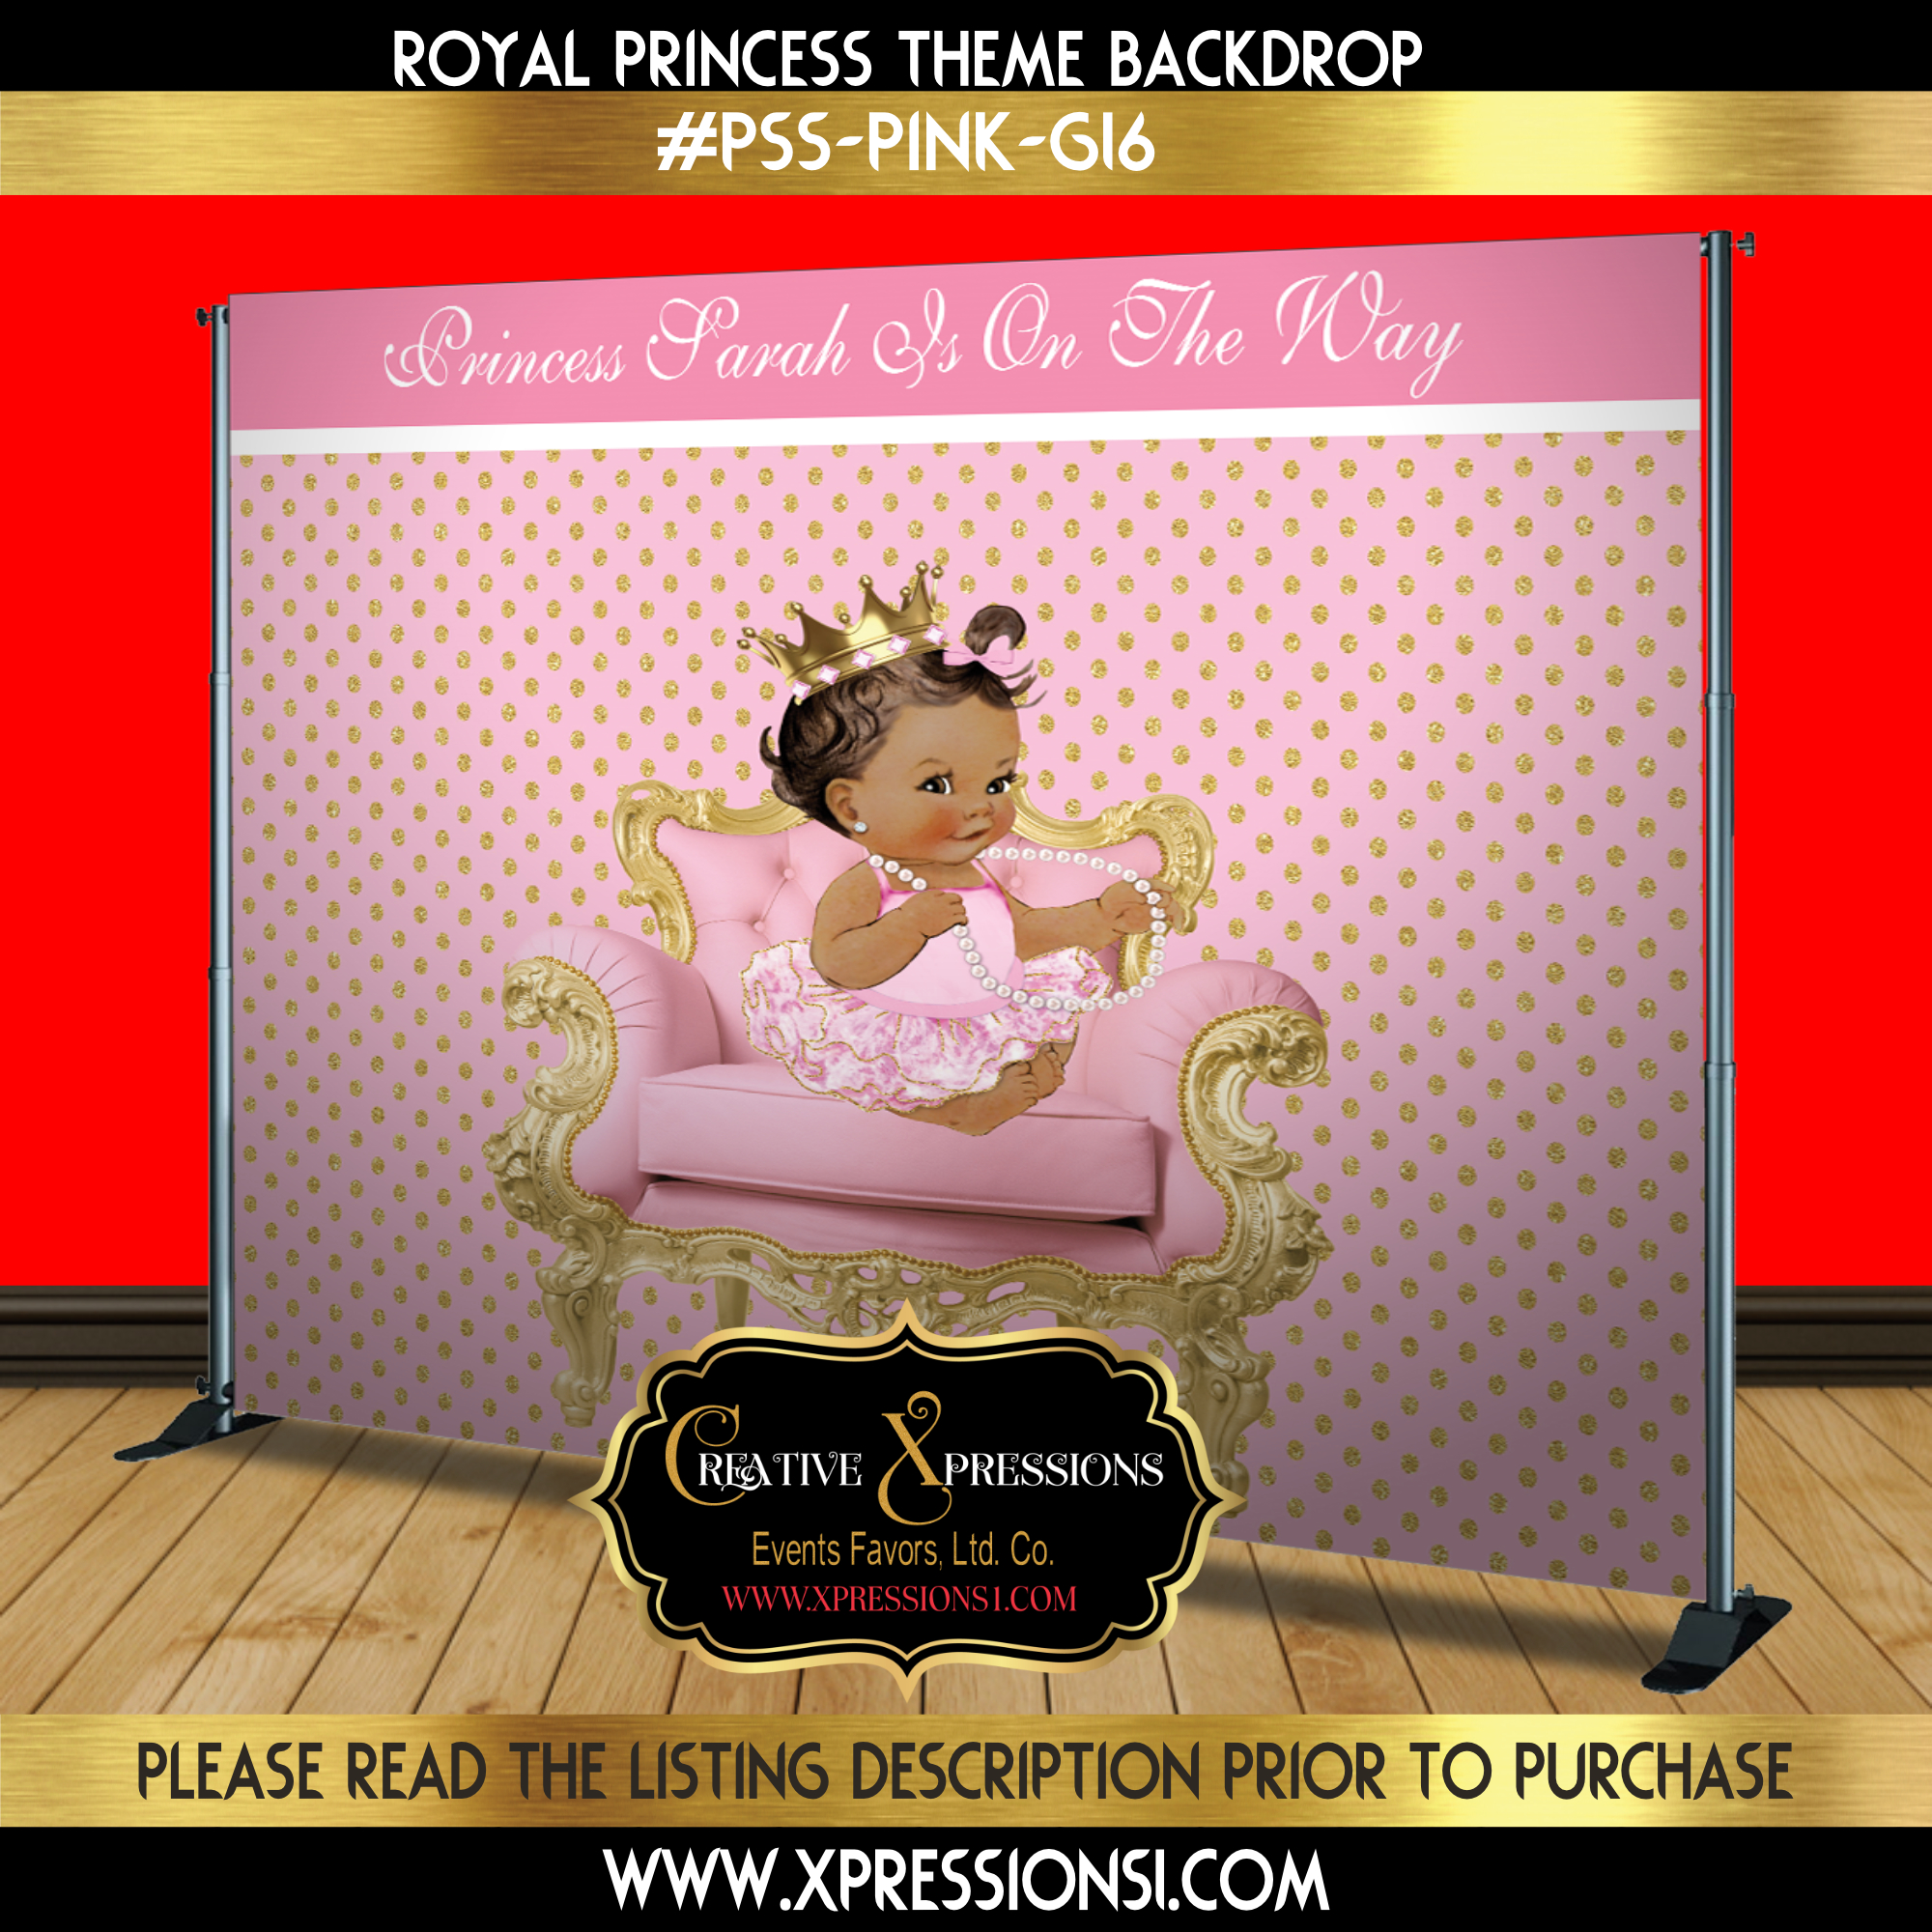 Princess on Polka Dots Backdrop